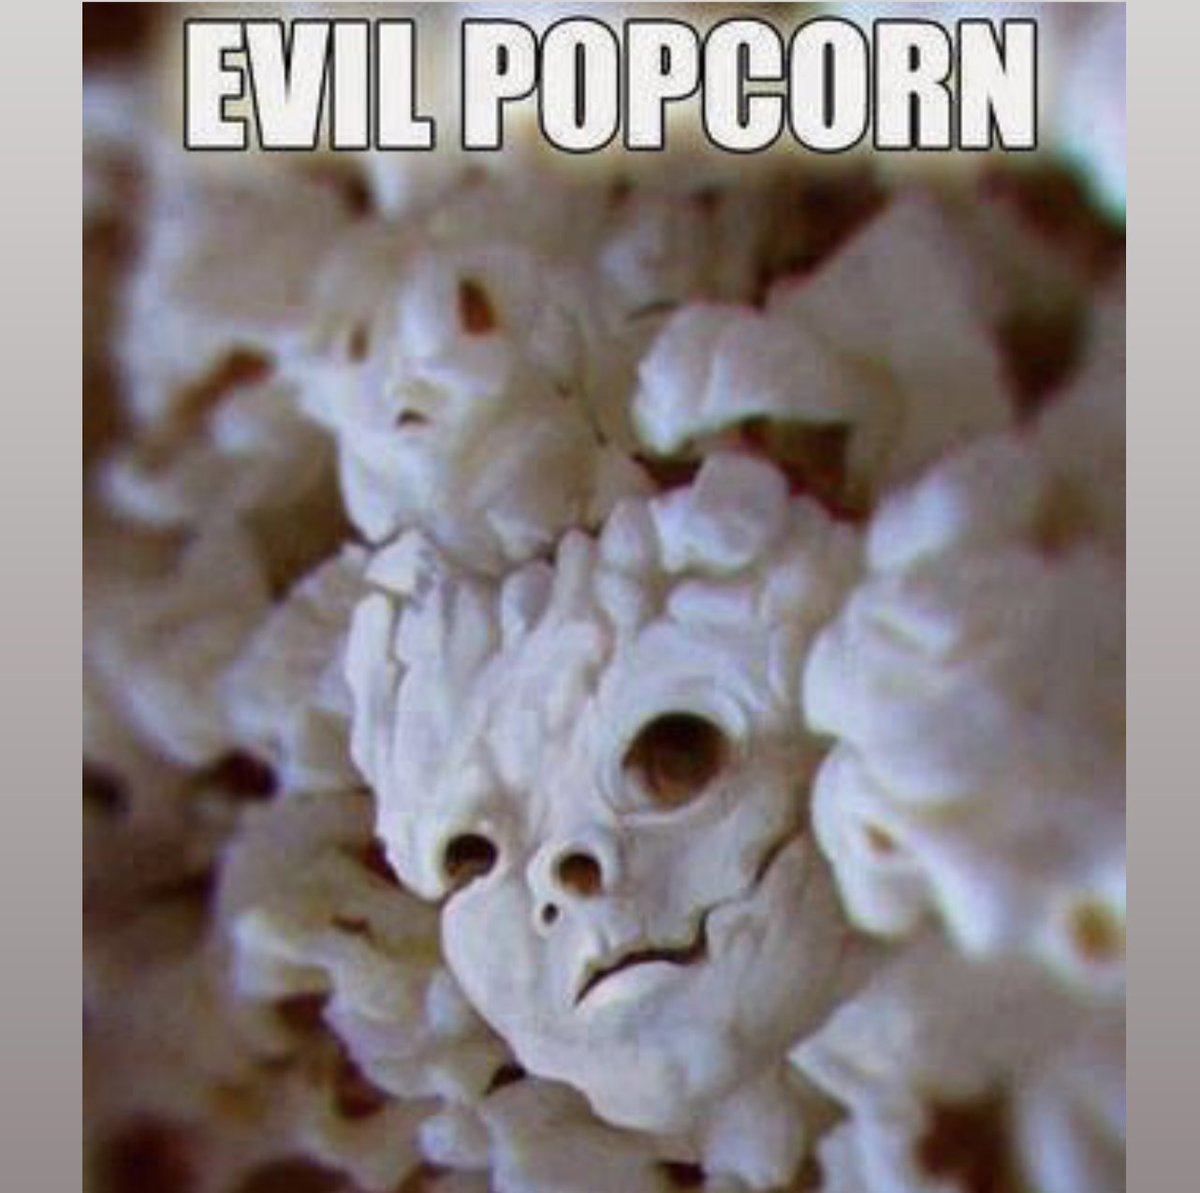 To eat, or not to eat: that is the question...   #NationalPopcornDay #horror #BloodBornMovie